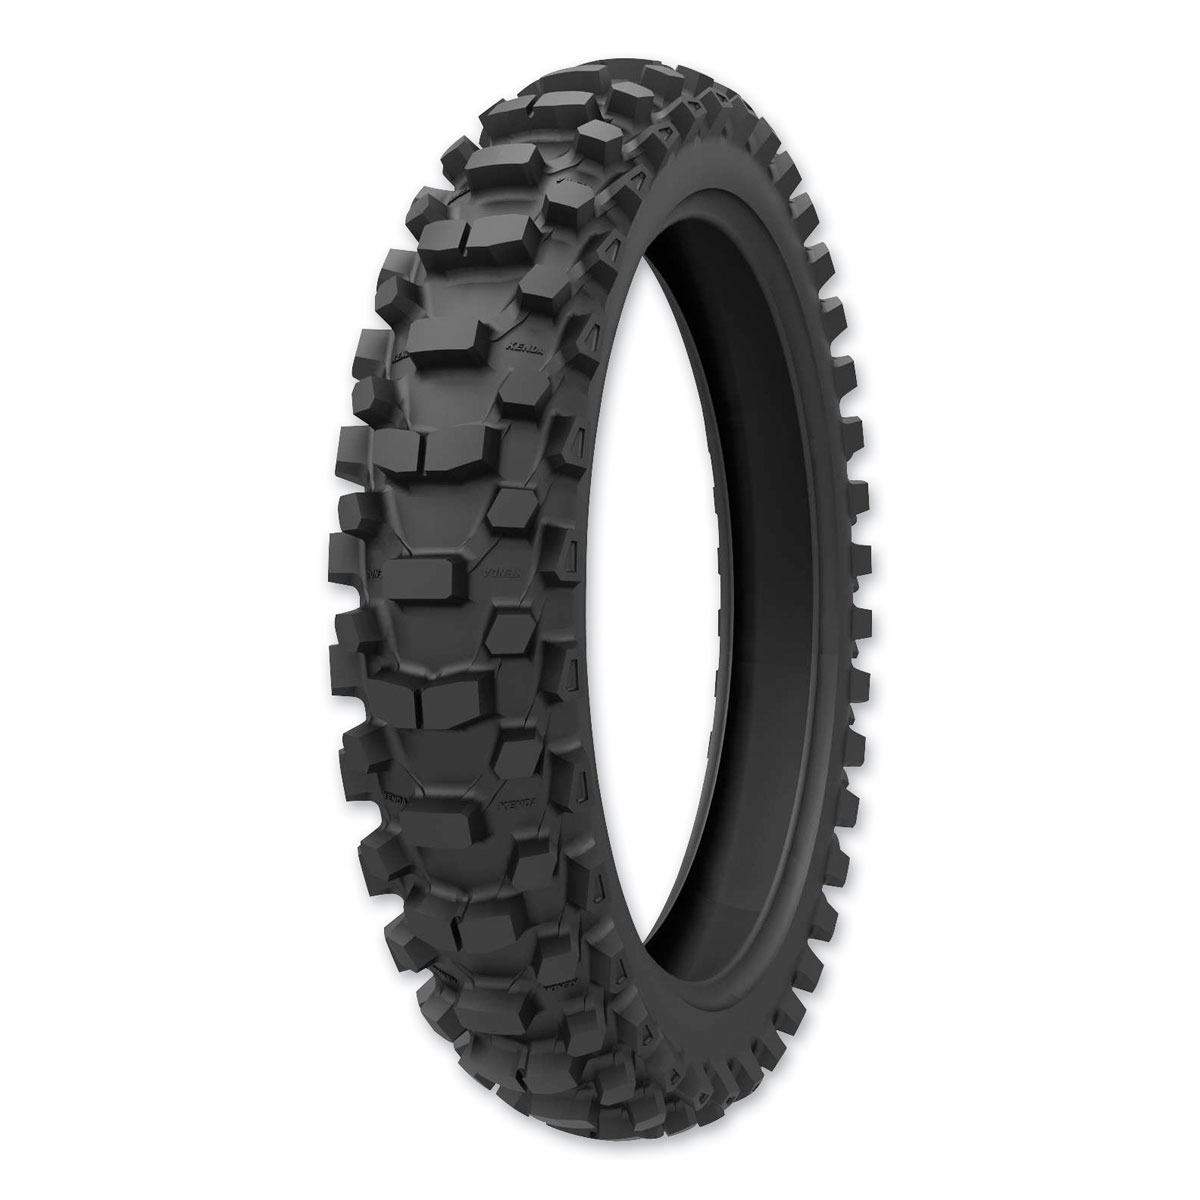 Kenda Tires K785 Millville II 90/100-14 Rear Tire